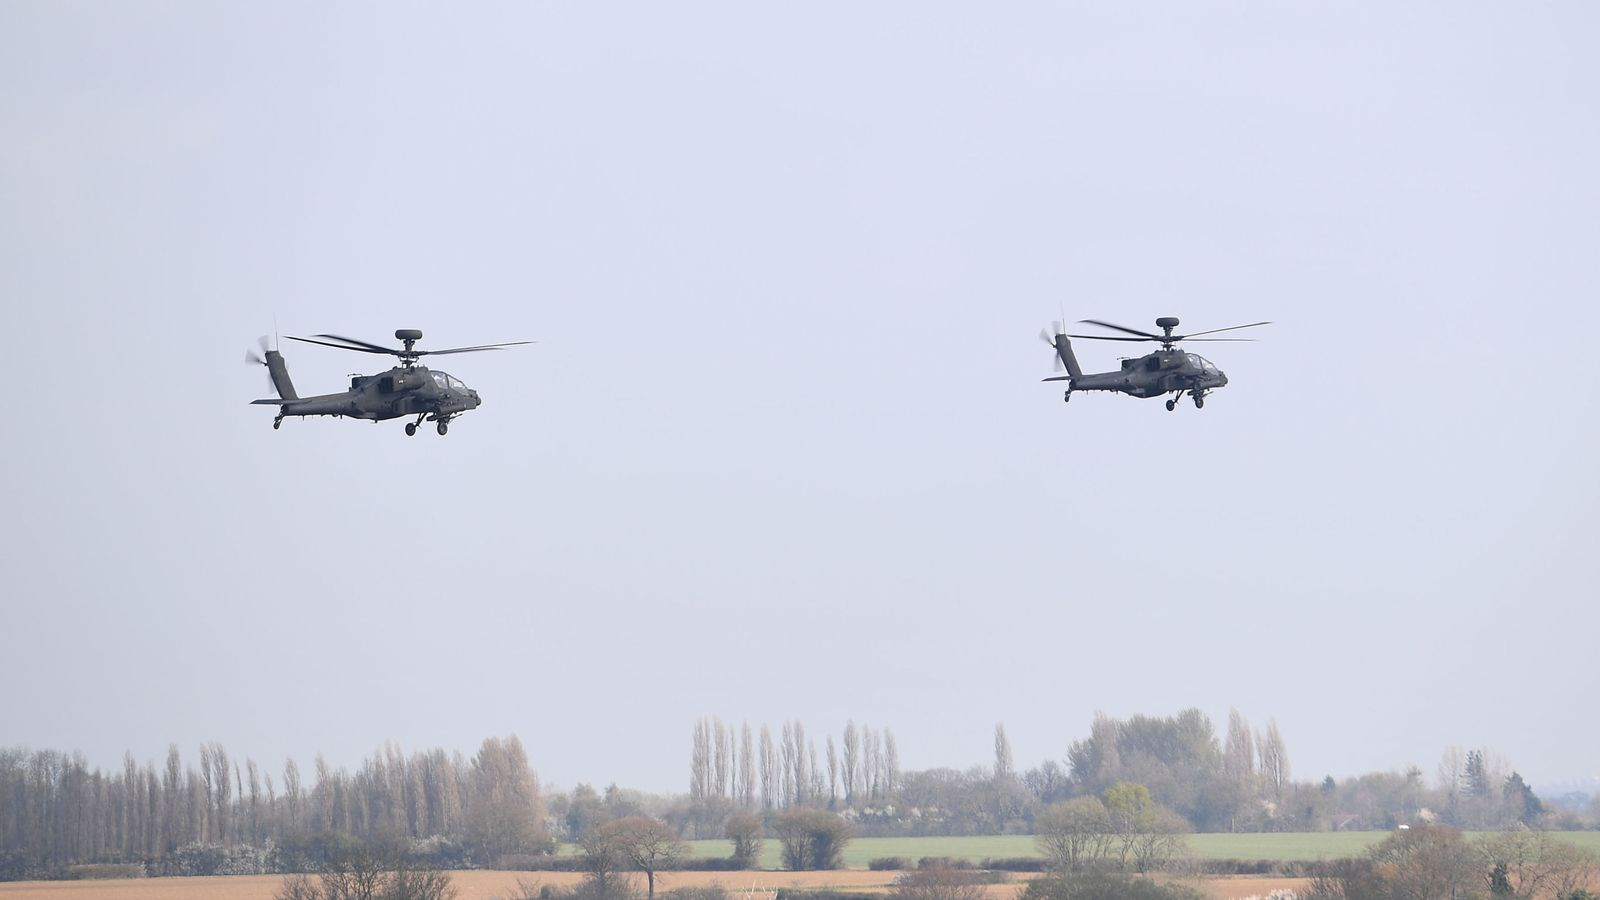 UK deploys attack helicopters to deter 'credible' Russian threat